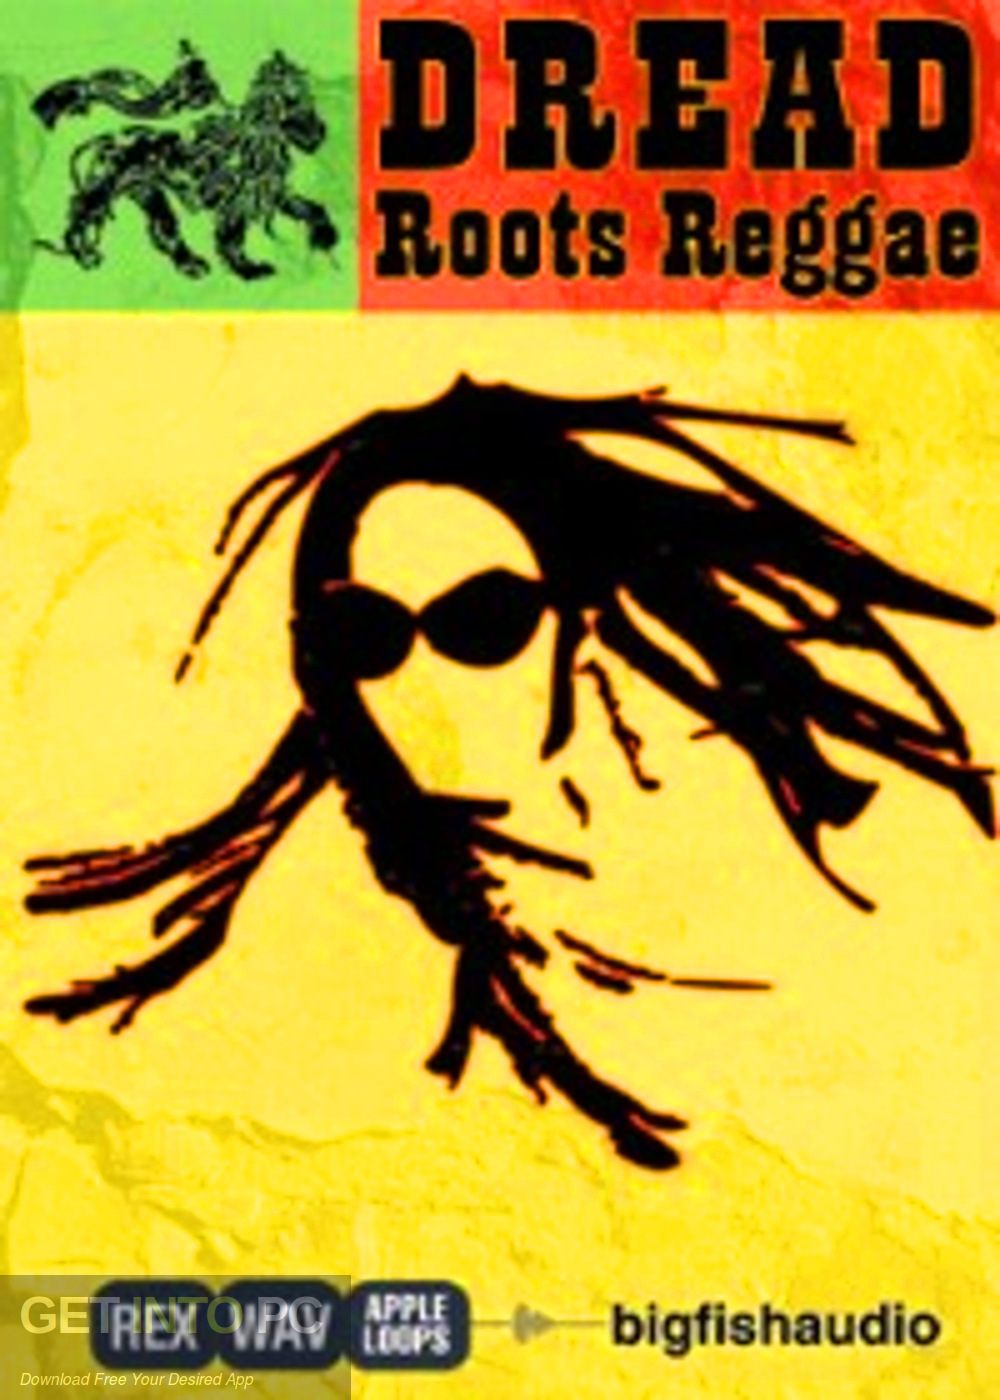 big fish audio dread roots reggae wav aiff rex sound pack download. Black Bedroom Furniture Sets. Home Design Ideas